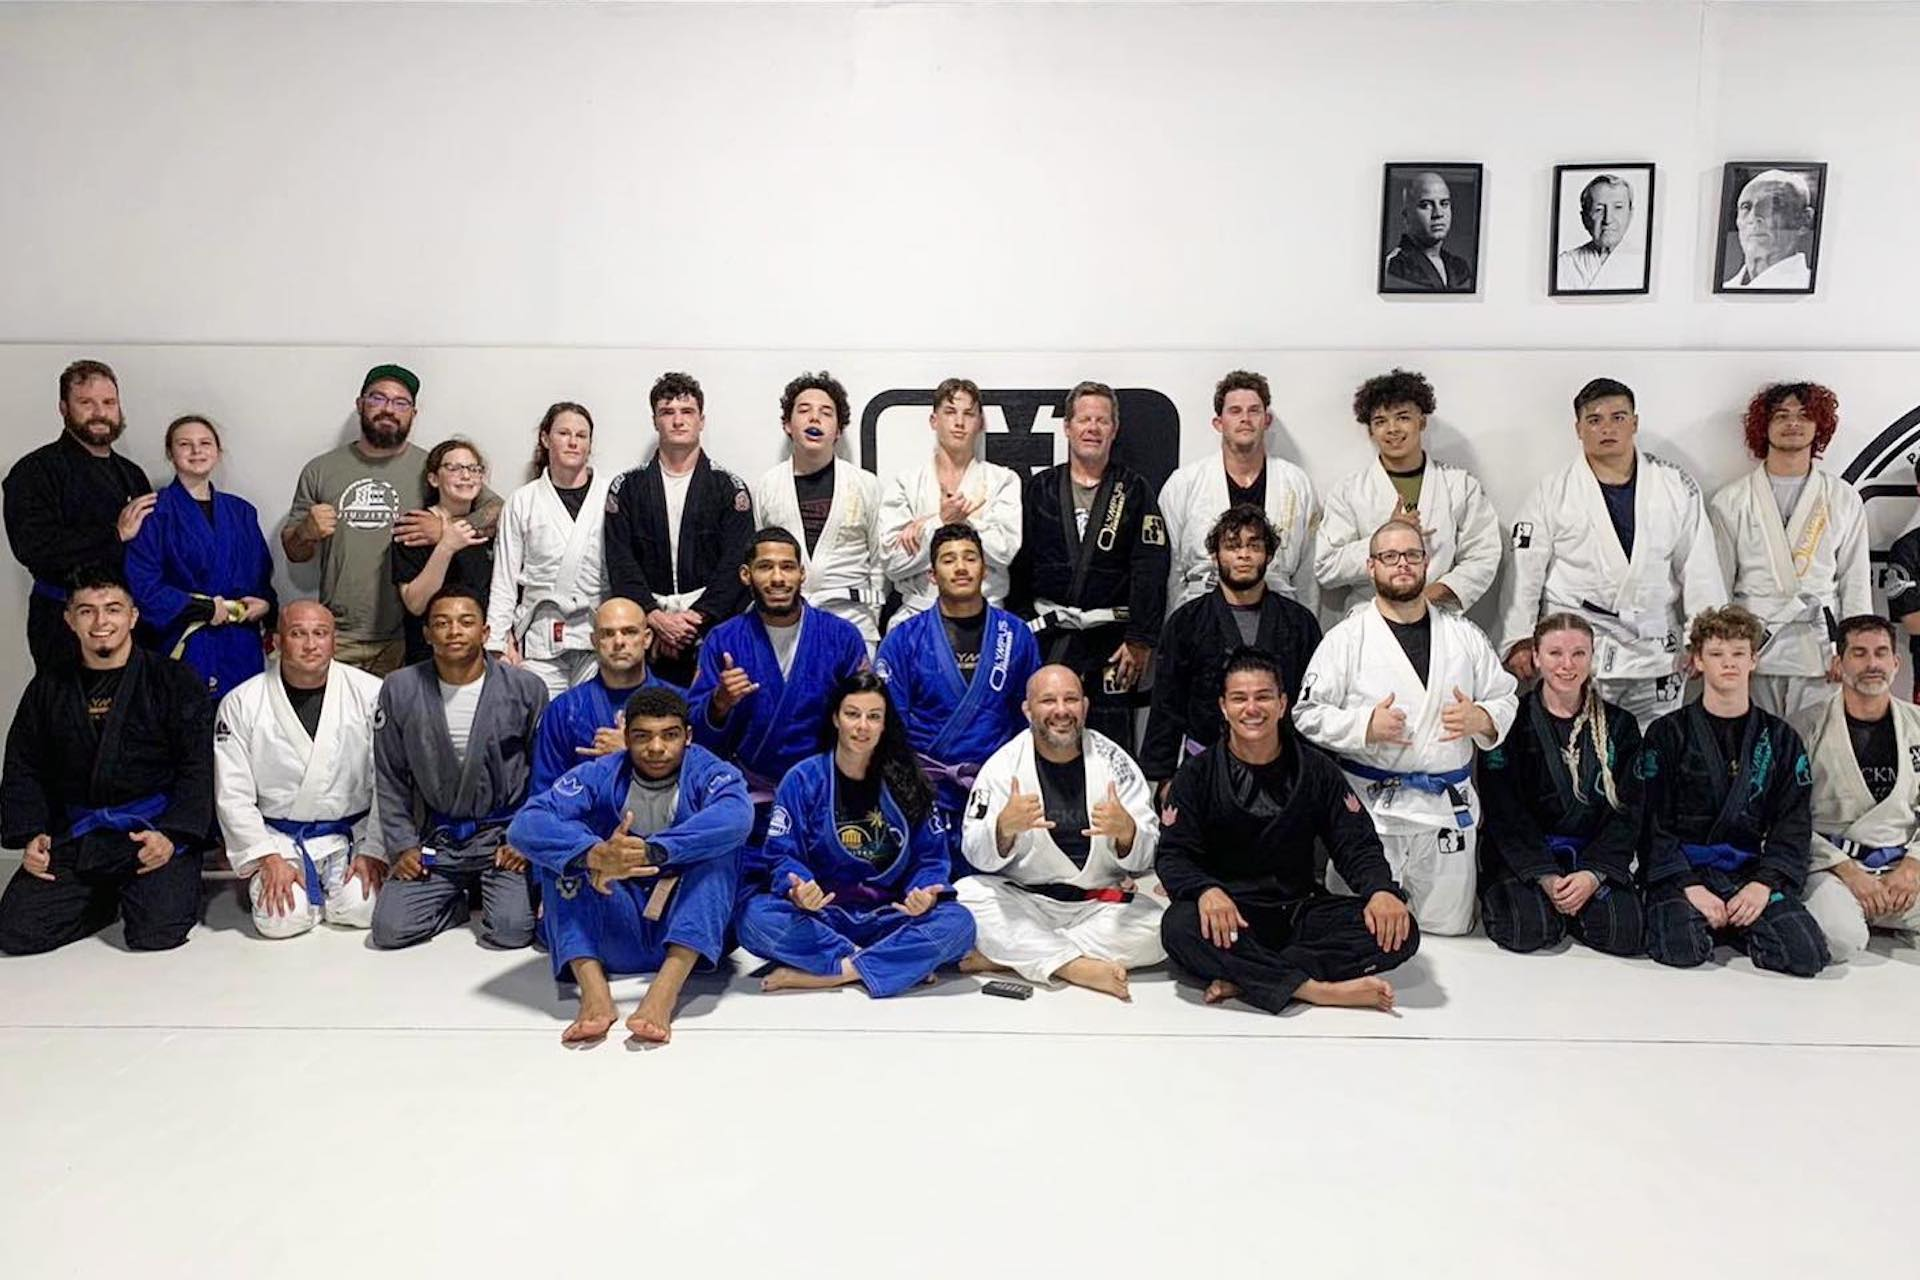 <style> h1 {   text-shadow: 2px 2px 8px #1e2a55; } </style>Lutz's #1 Source for Premier BJJ Training